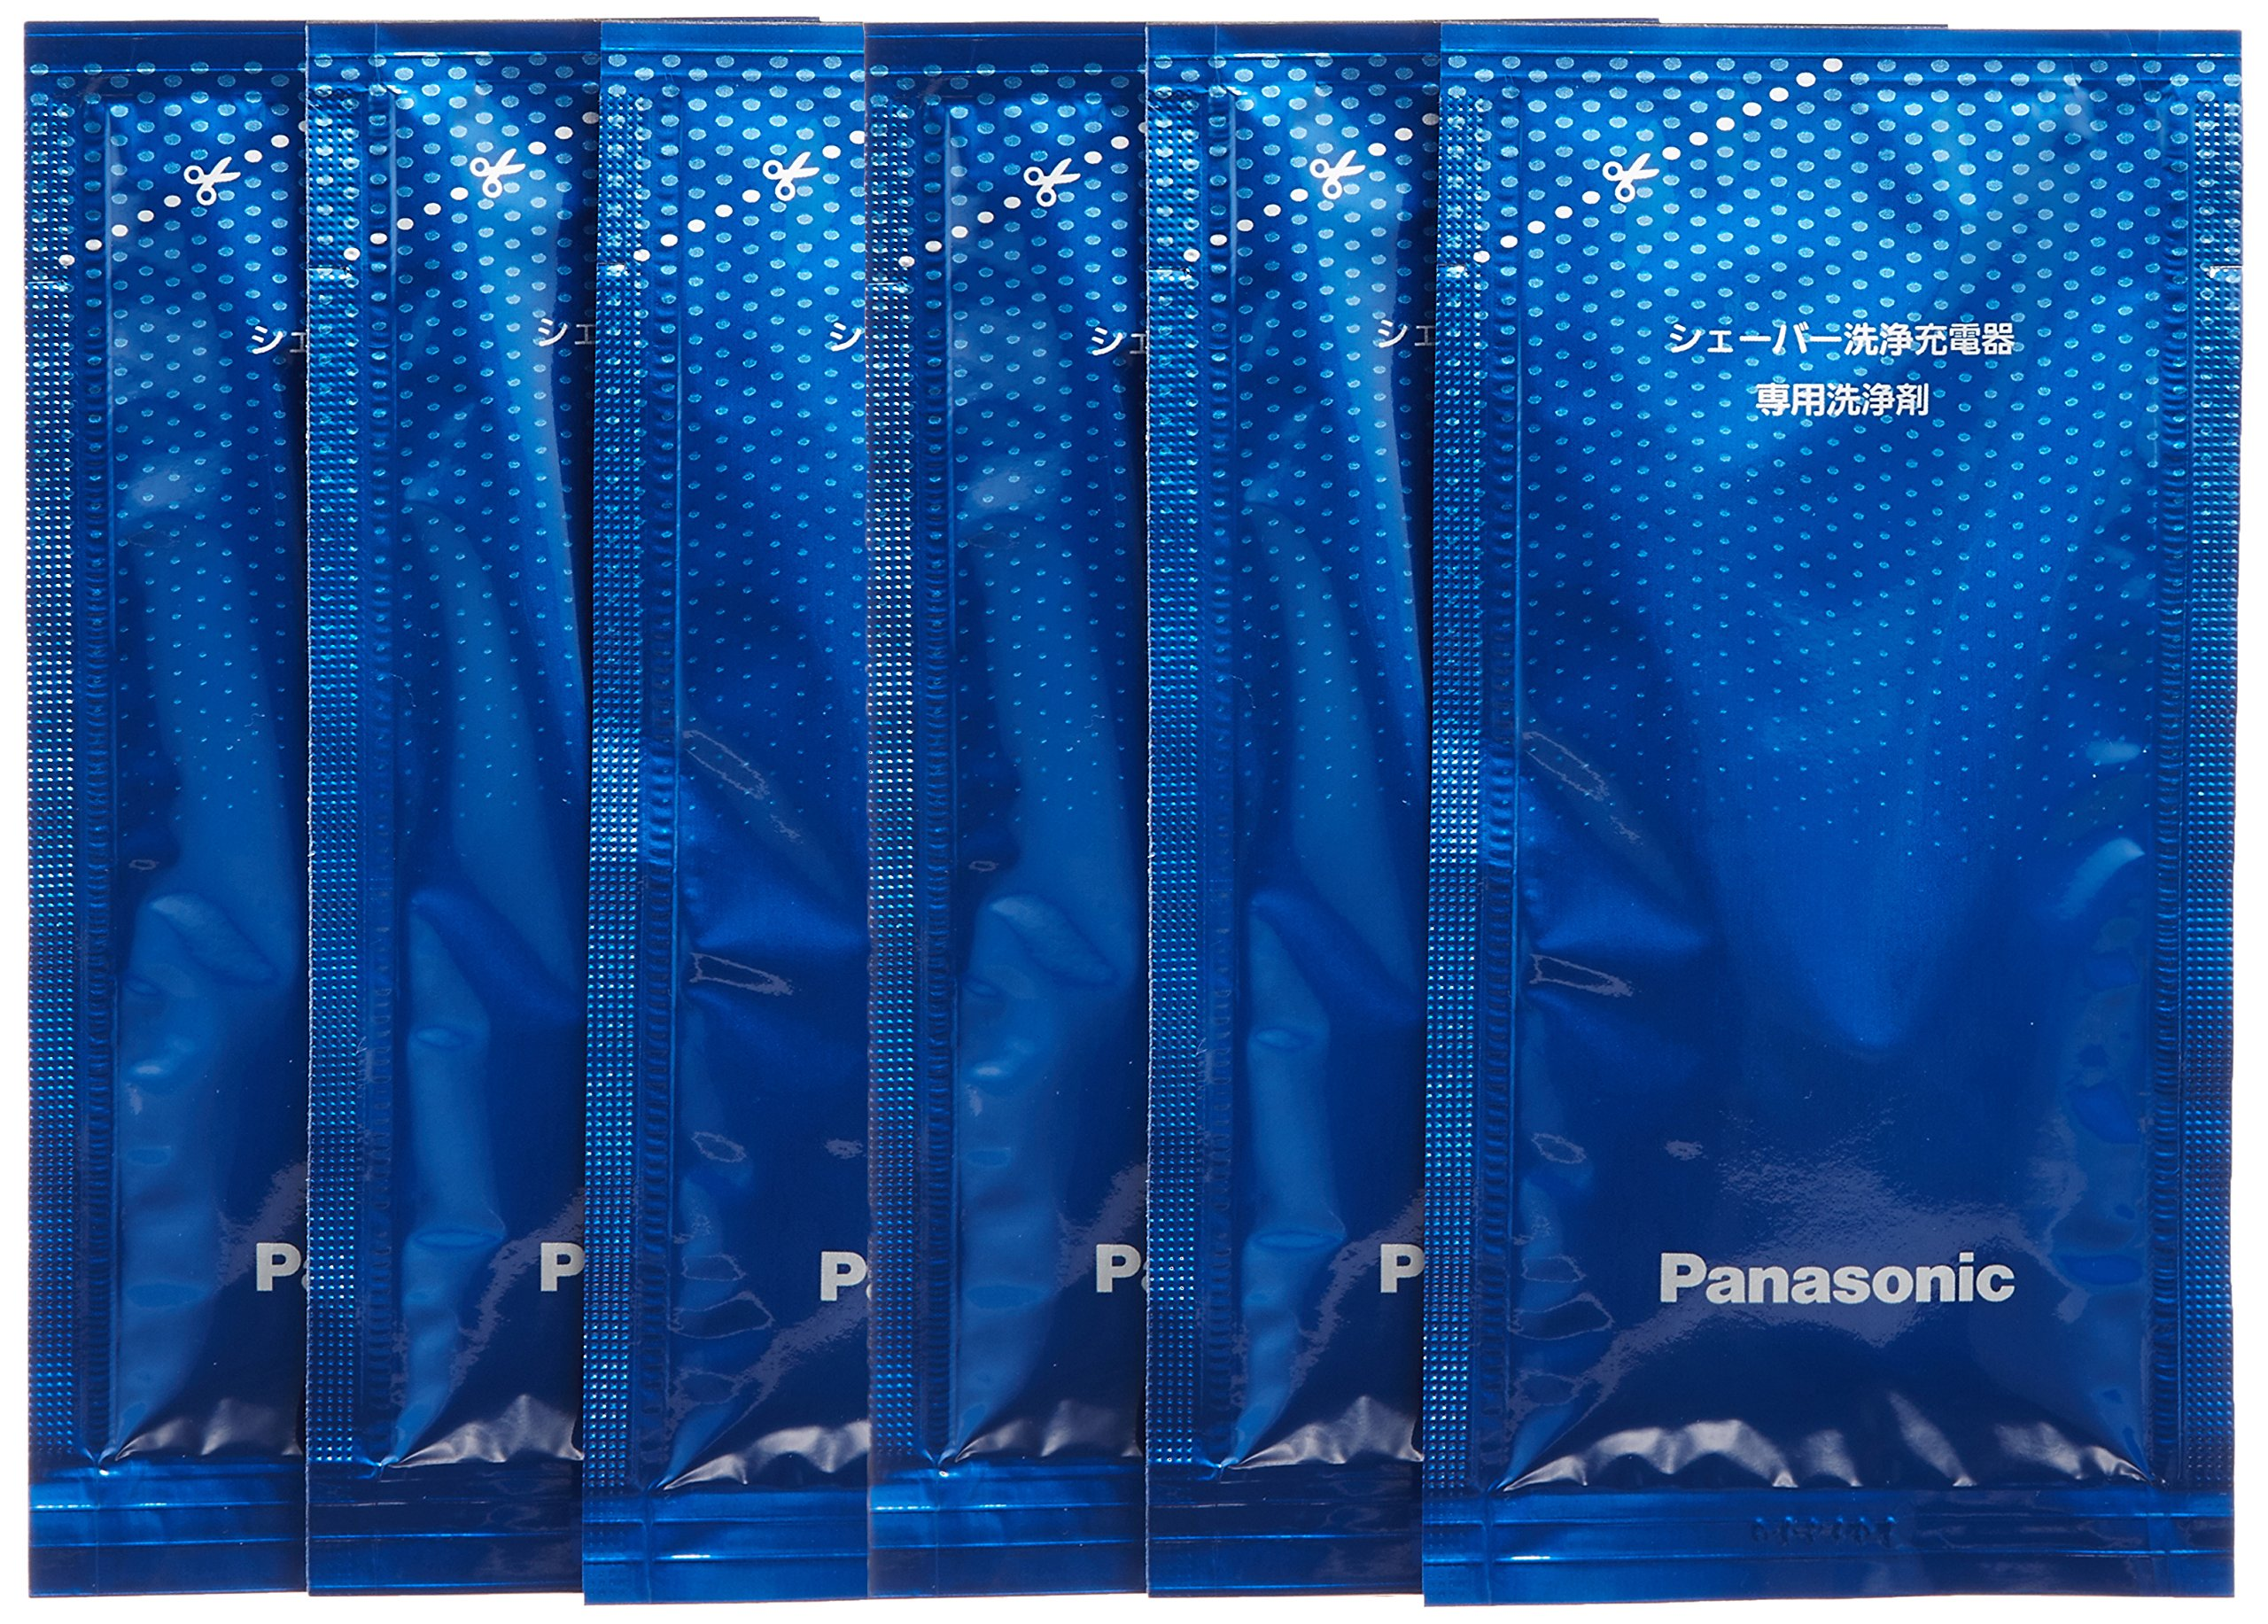 [Bulk buying set] Panasonic LAMDASH shaver cleaning charger dedicated cleaning agents -6 pieces- (japan import)